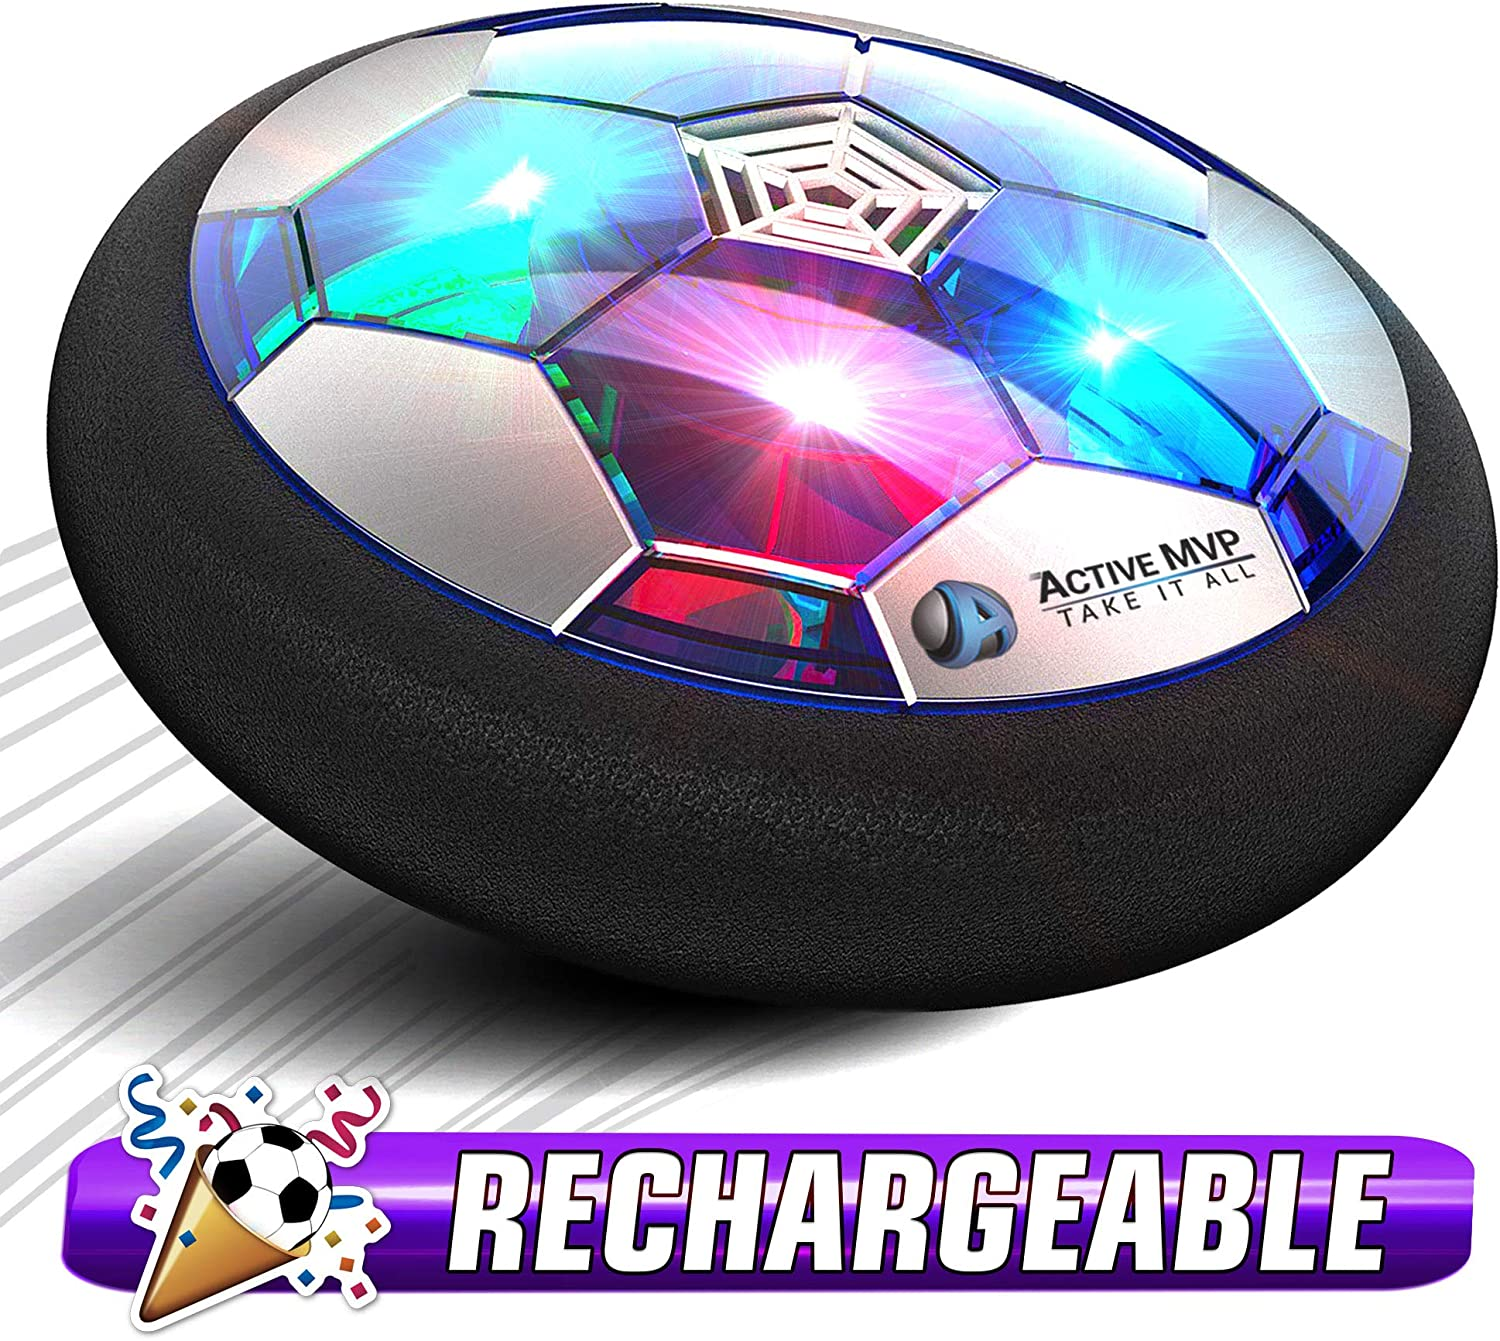 ActiveMVP Kids Toys Hover Soccer Ball Rechargeable - Indoor LED Light Up Air Power Kick Disc Fun Game - Rainy Day Time Killer - No AA Battery Needed - Gift for Boys Girls Age 3 4 5 6 7 8 9 10 11-16